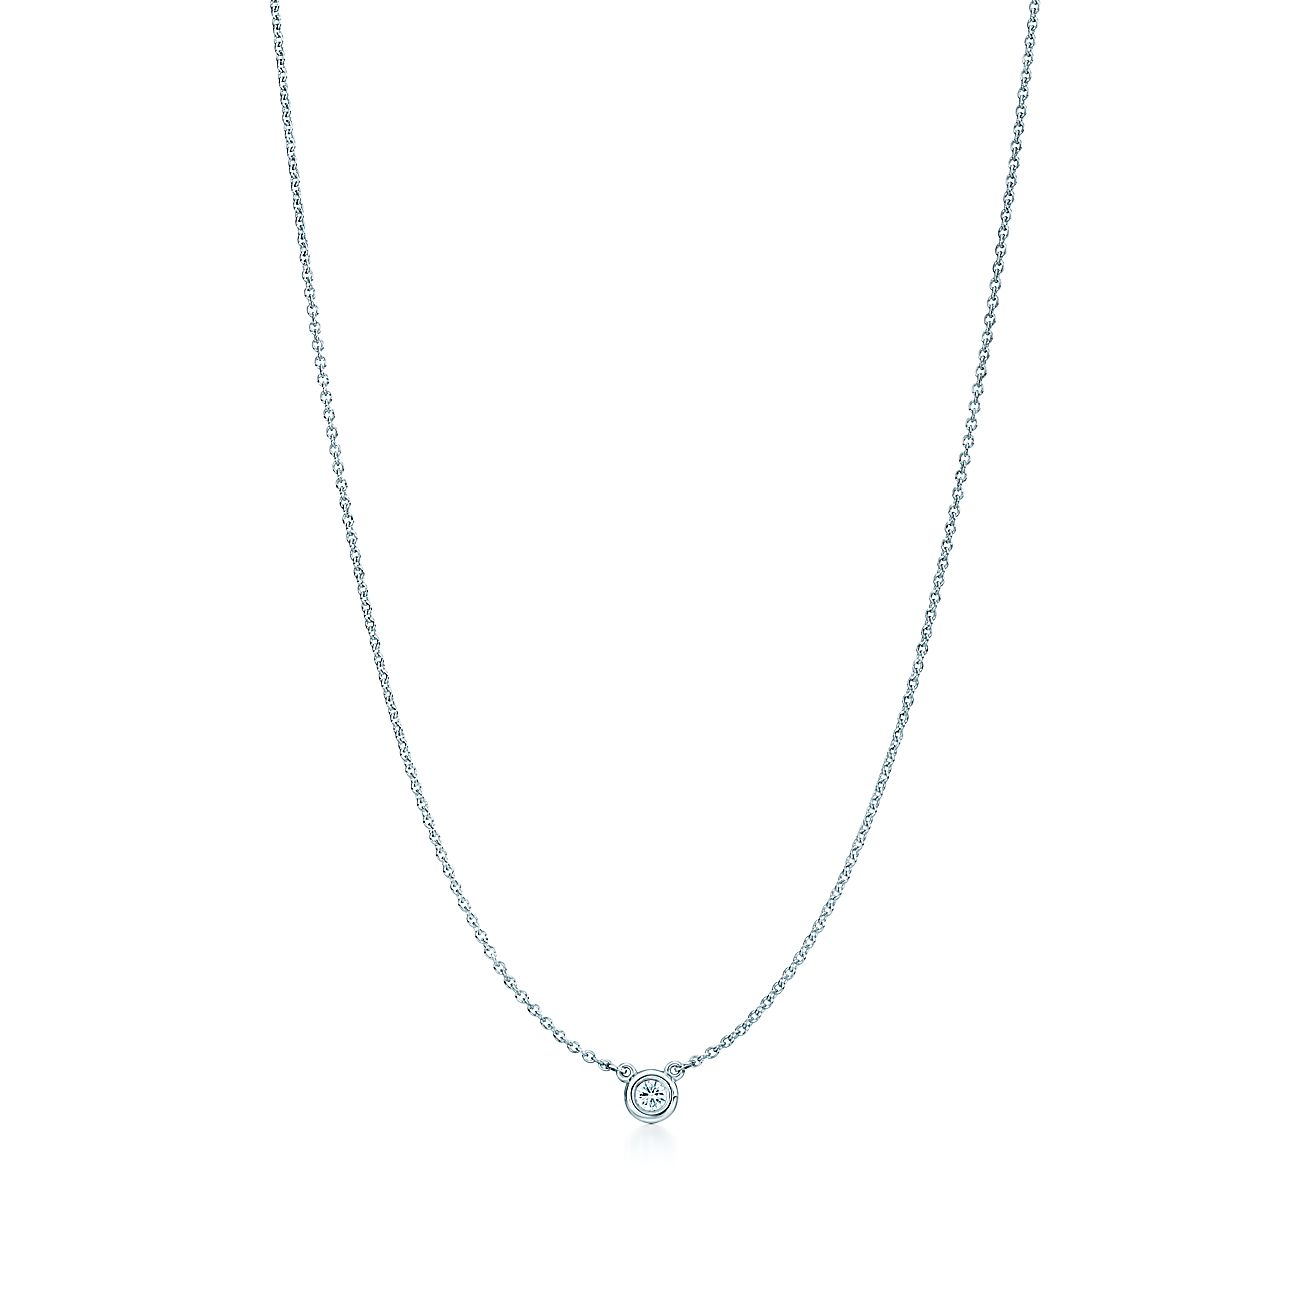 diamonds necklaces category l webstore pendant trilogy jones diamond white number product necklace ernest pendants gold